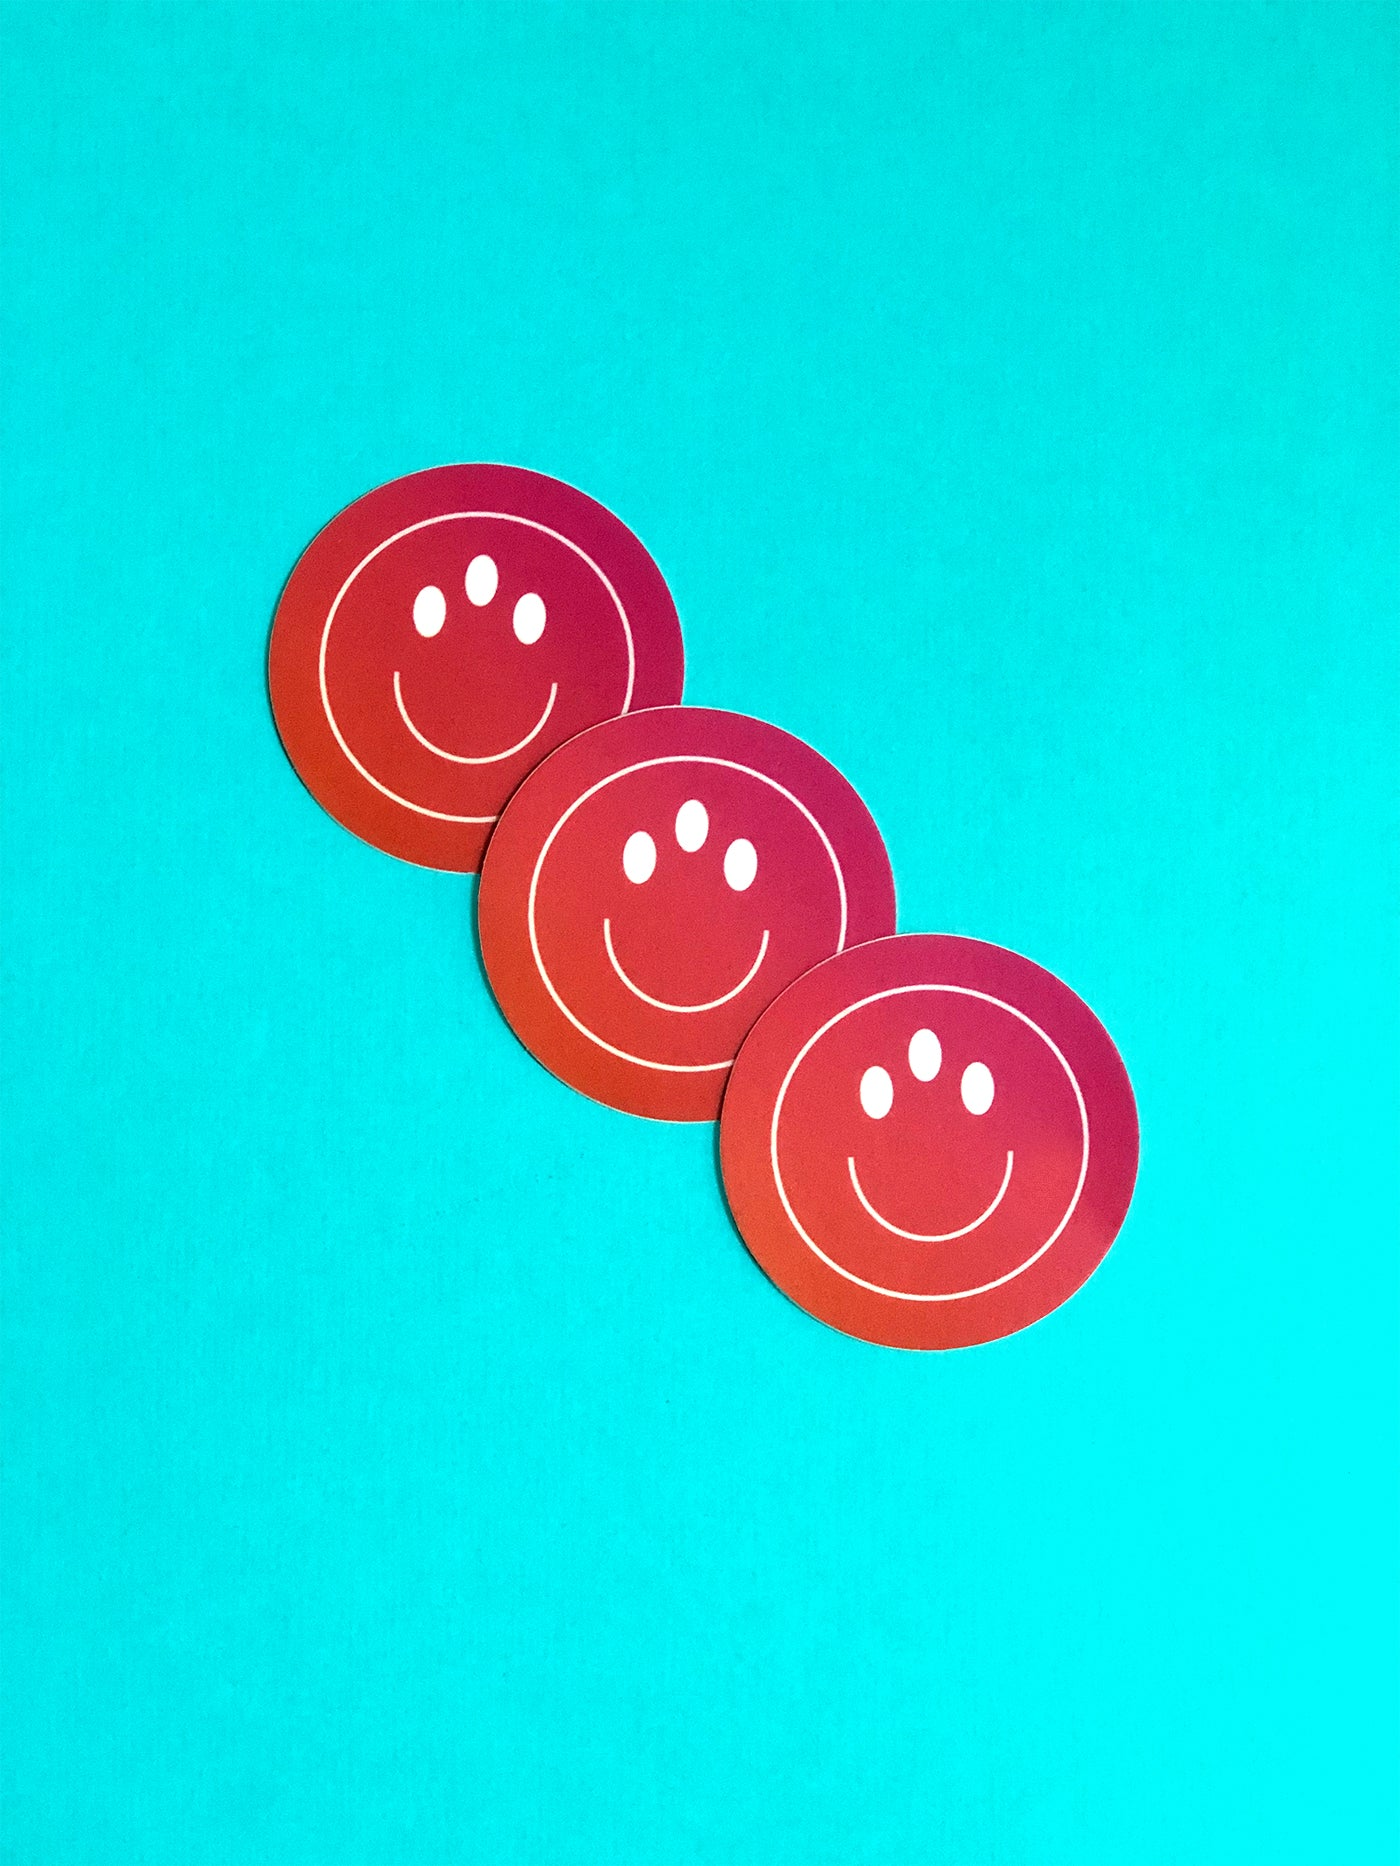 Third Eye Smiley Sticker 3-Pack